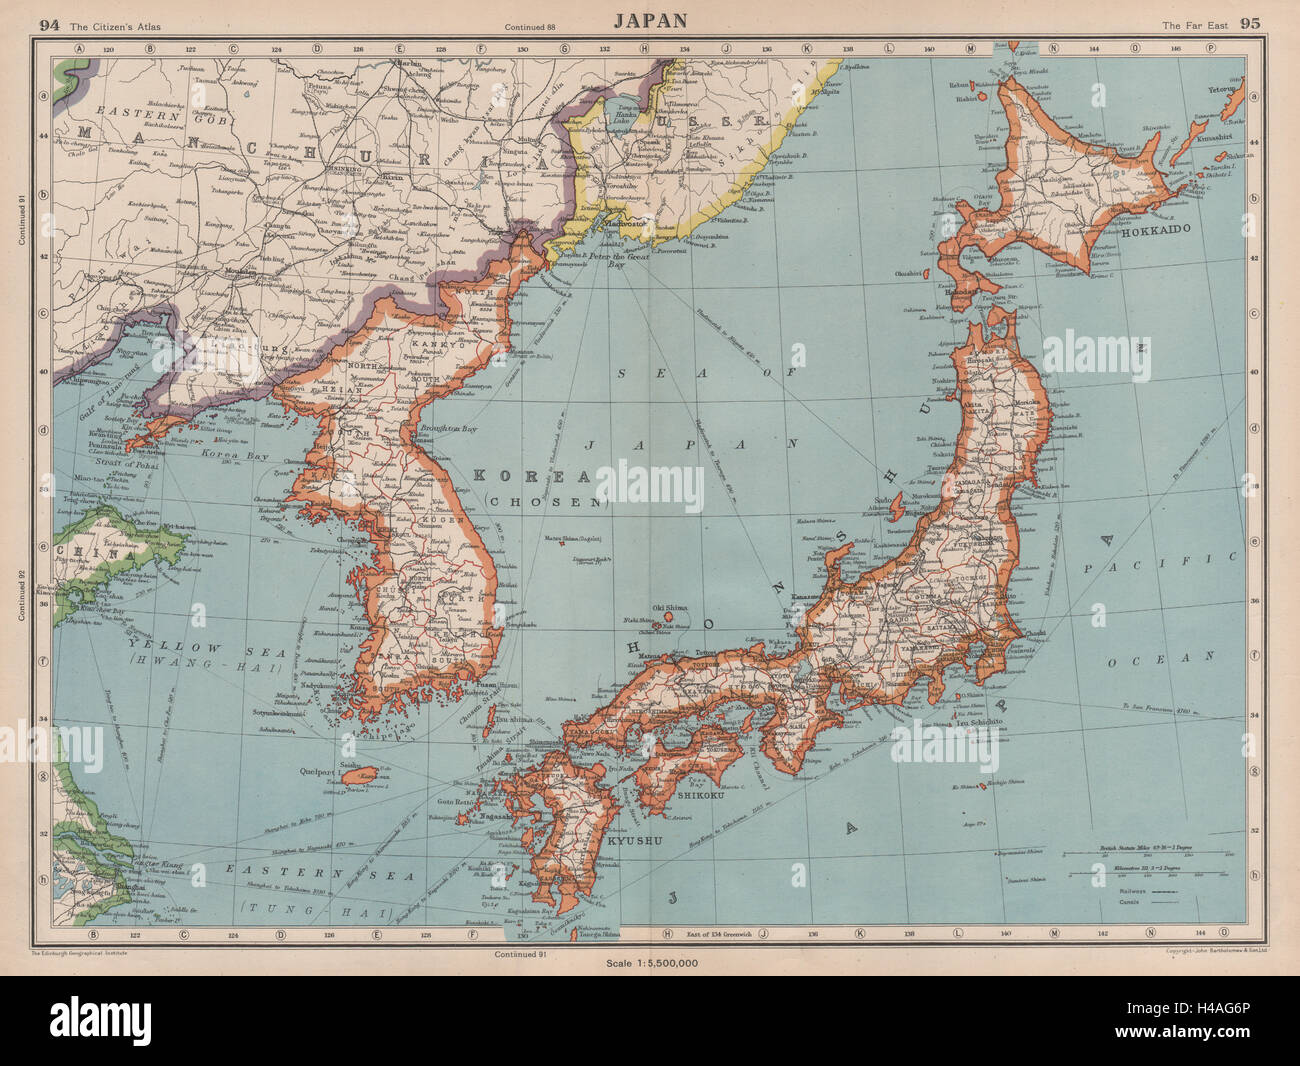 JAPAN KOREA Shows Japanese Occupied Manchuria BARTHOLOMEW - Japan map korea